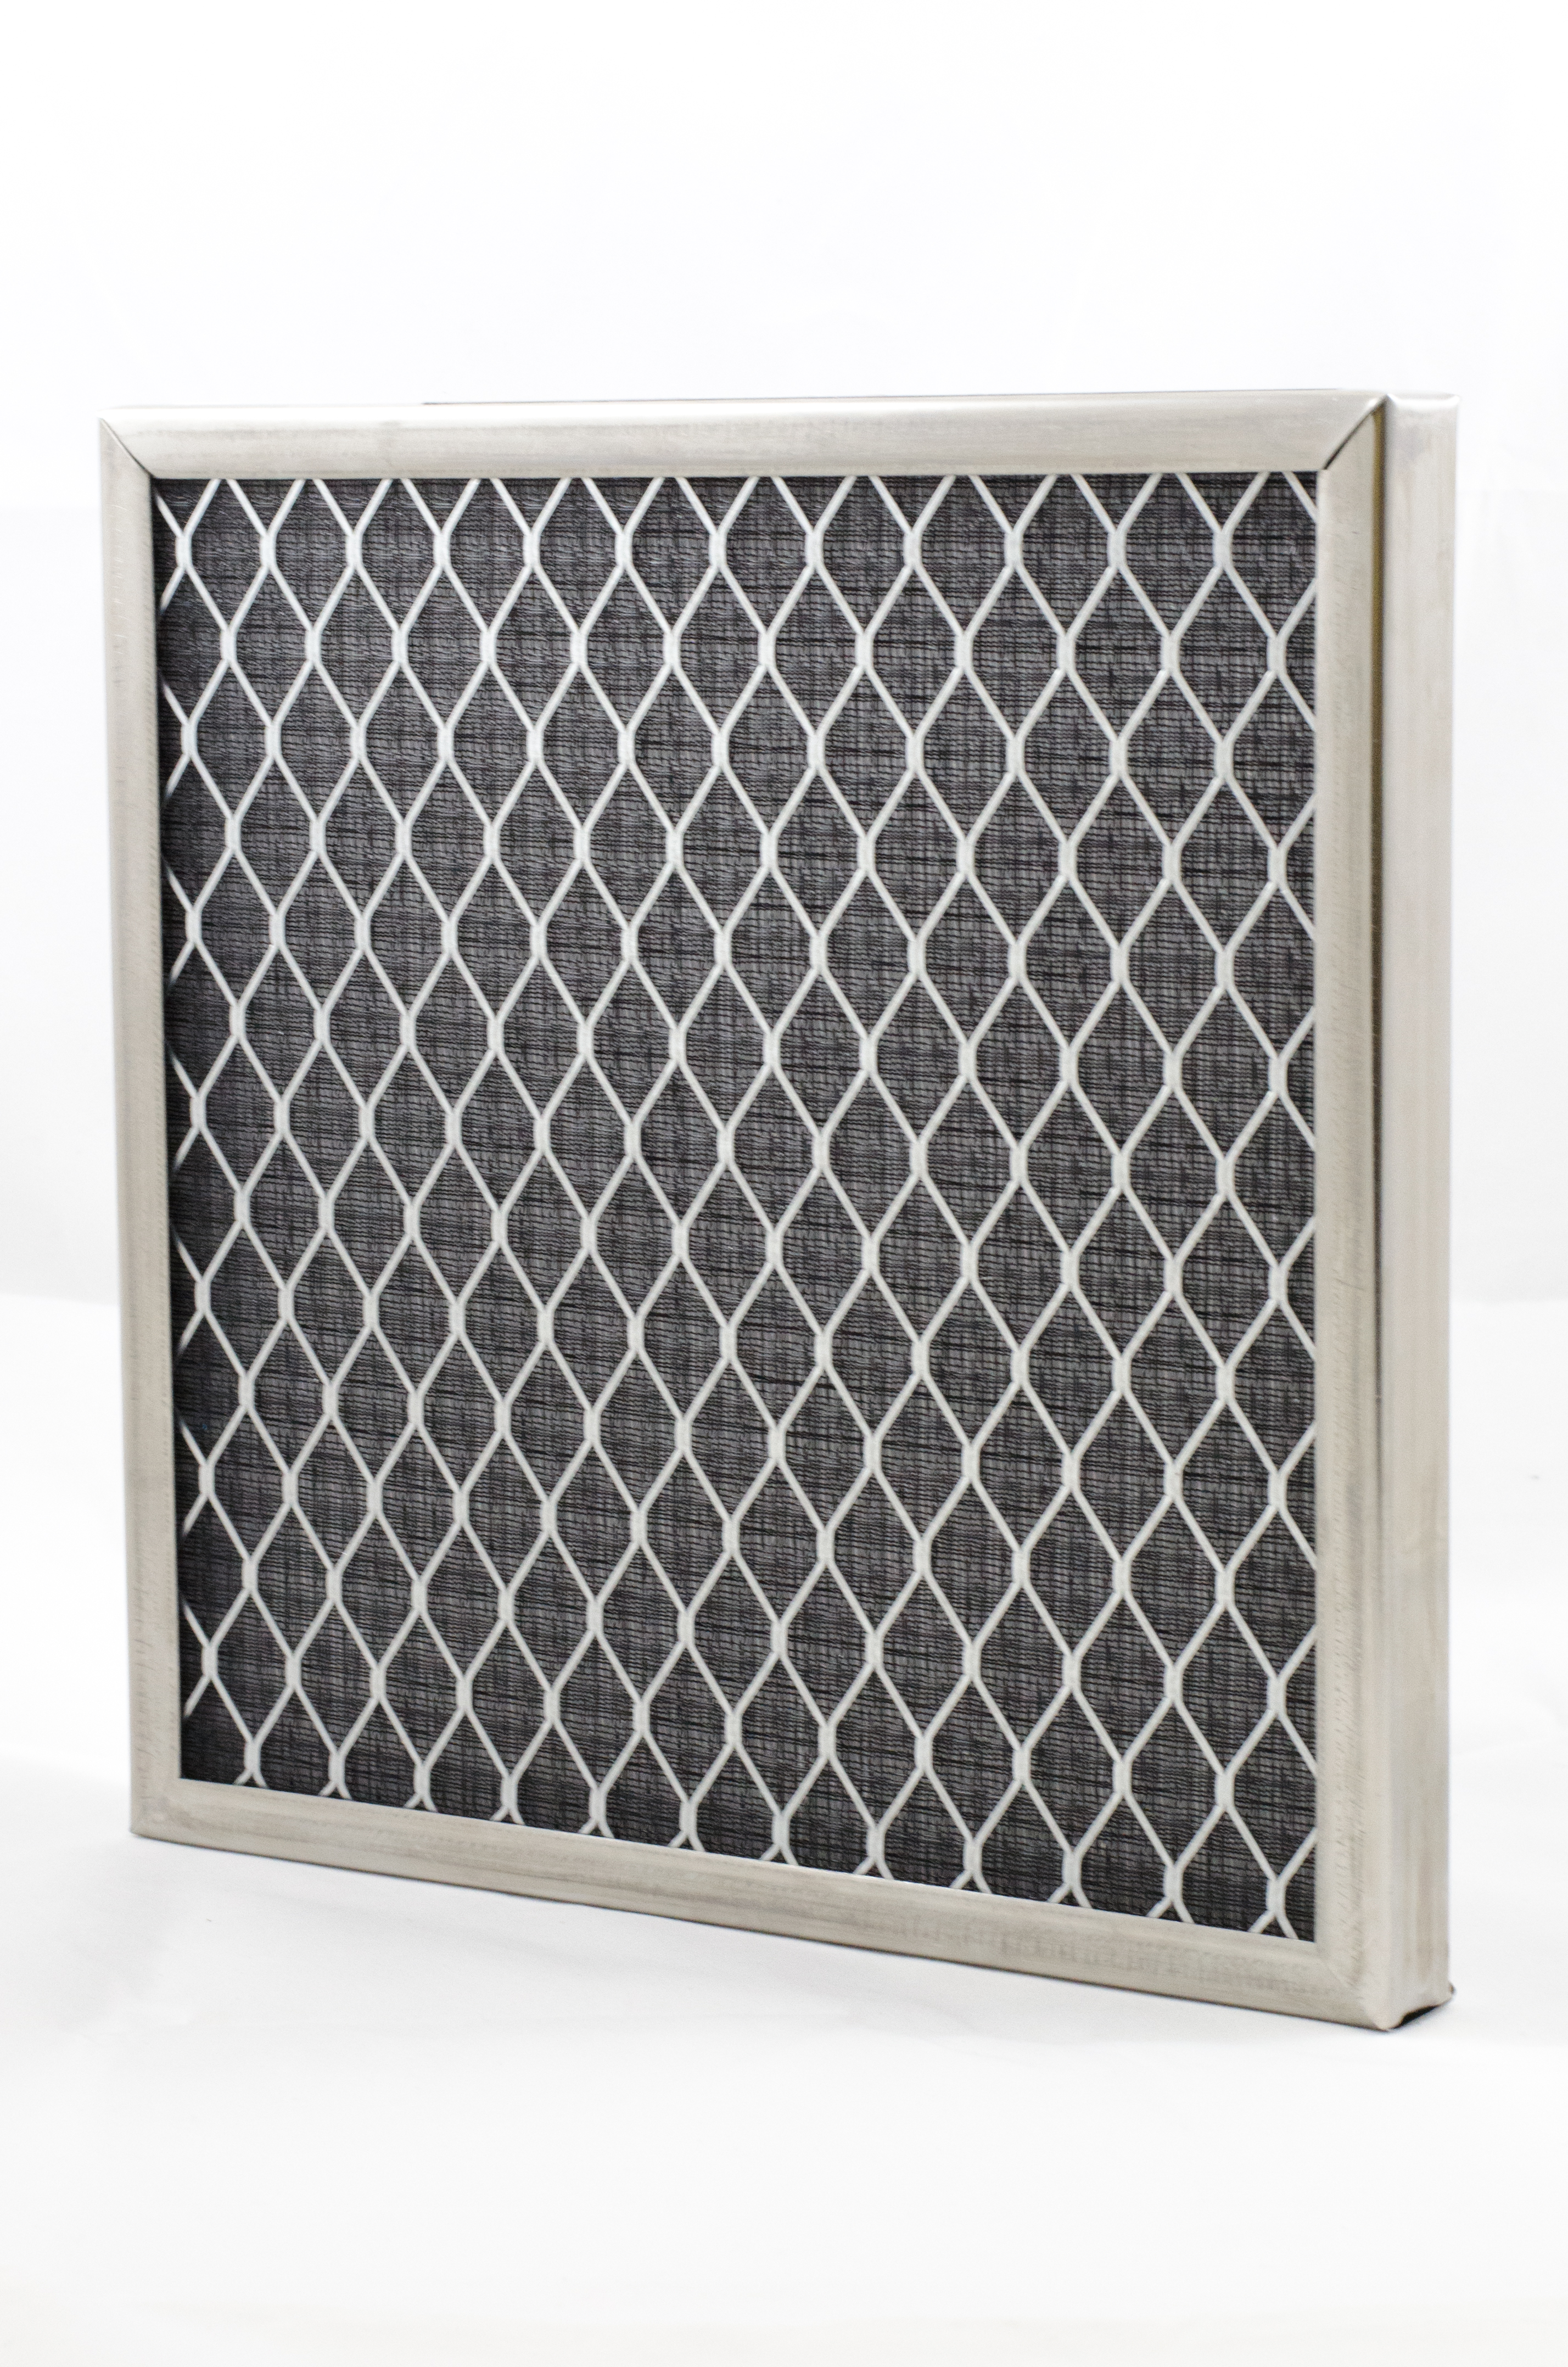 Ac Air Filter Sizes : What are standard air filter sizes